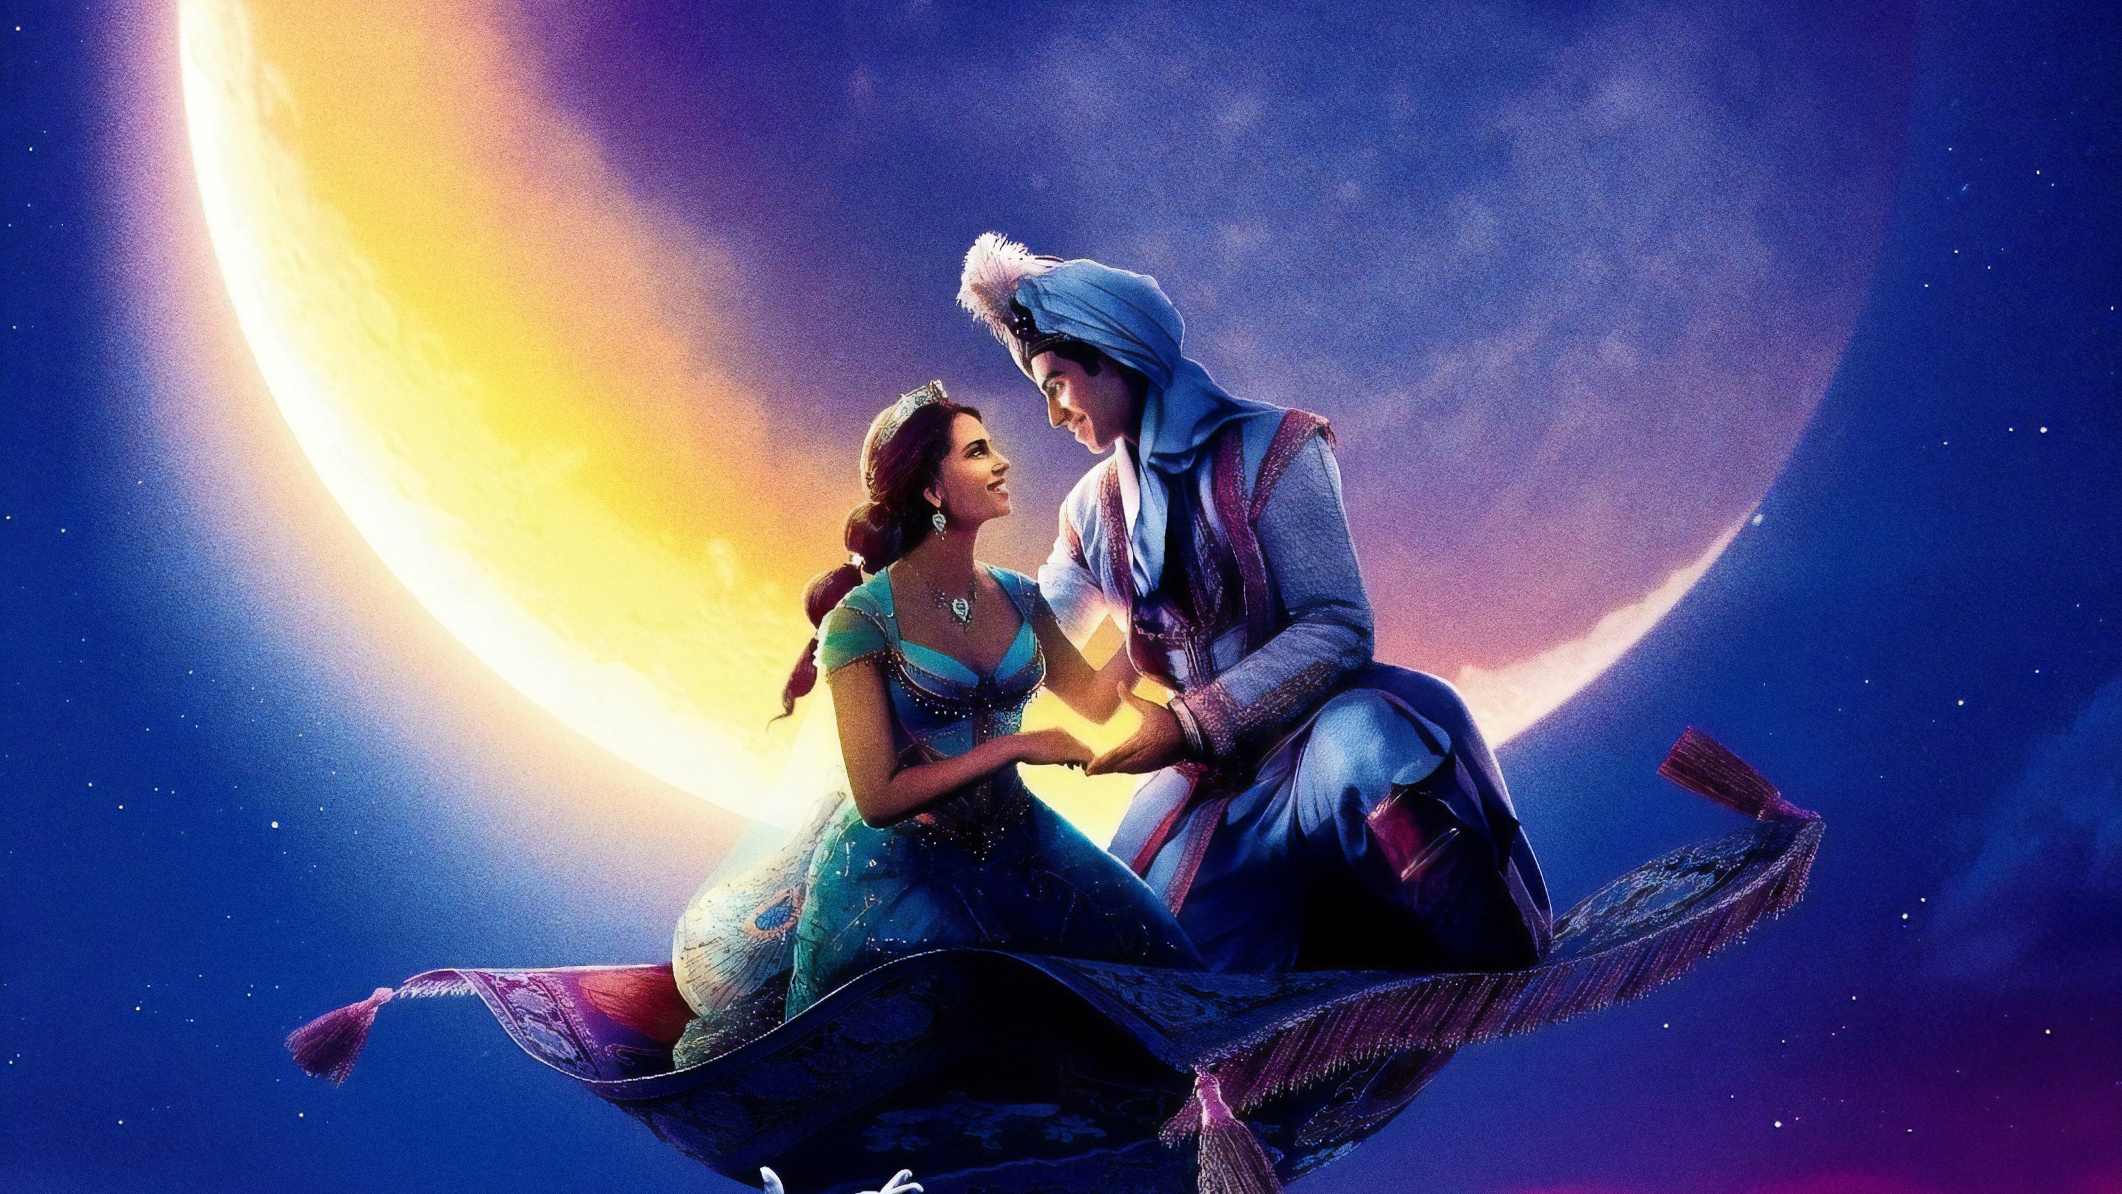 Aladdin 2019 Movie Poster Hd Movies 4k Wallpapers Images